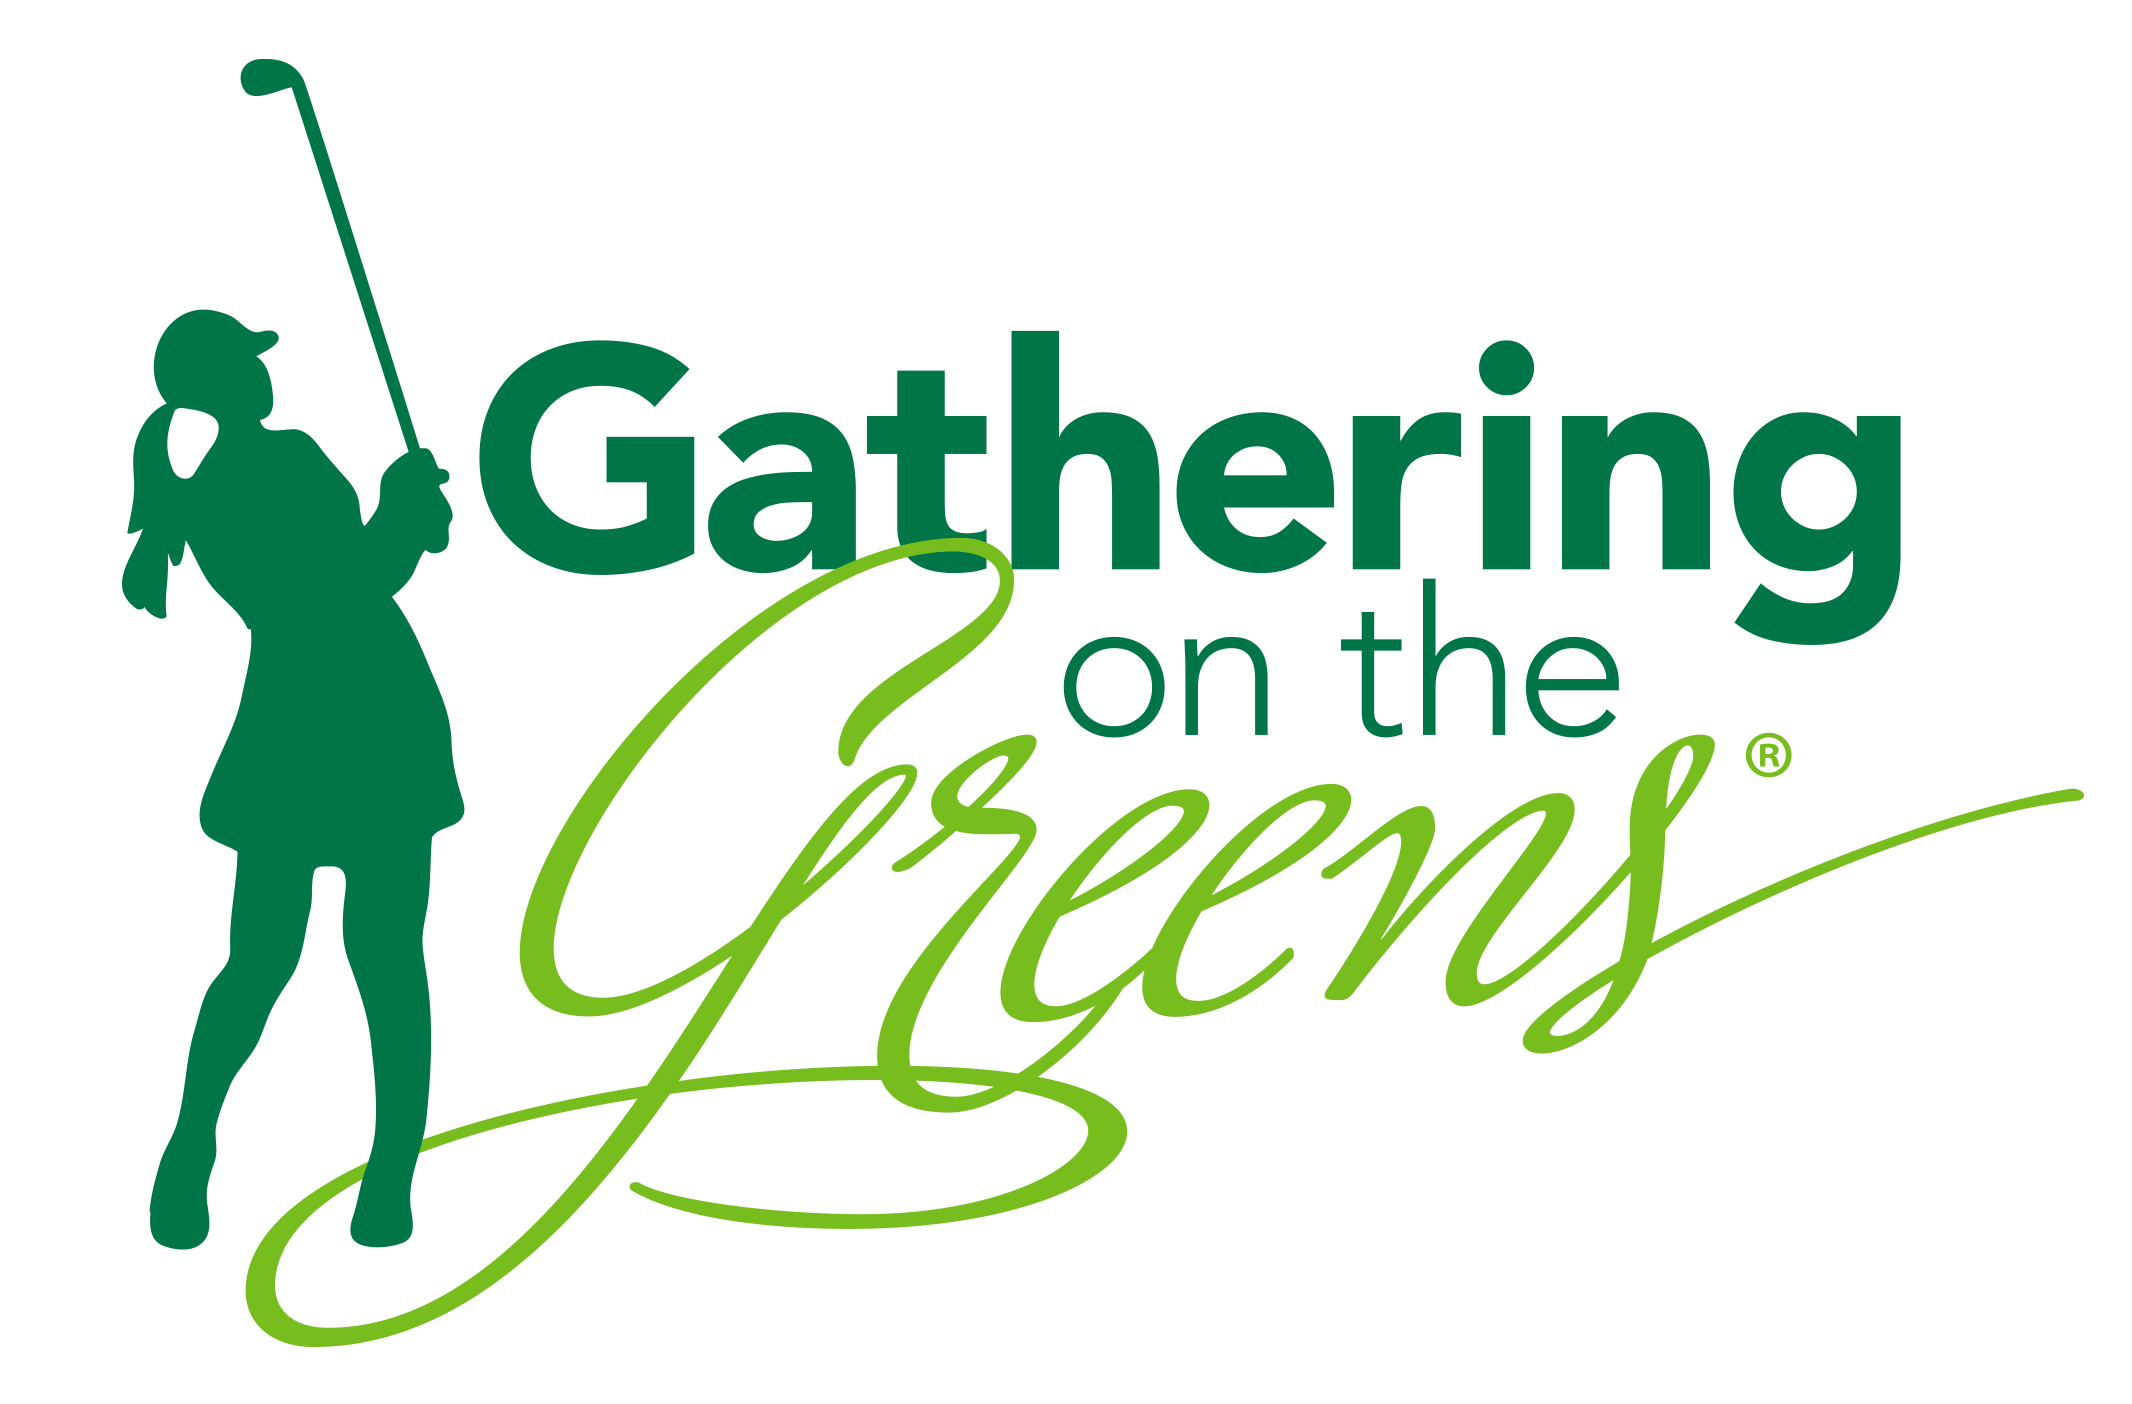 Gathering on the Greens